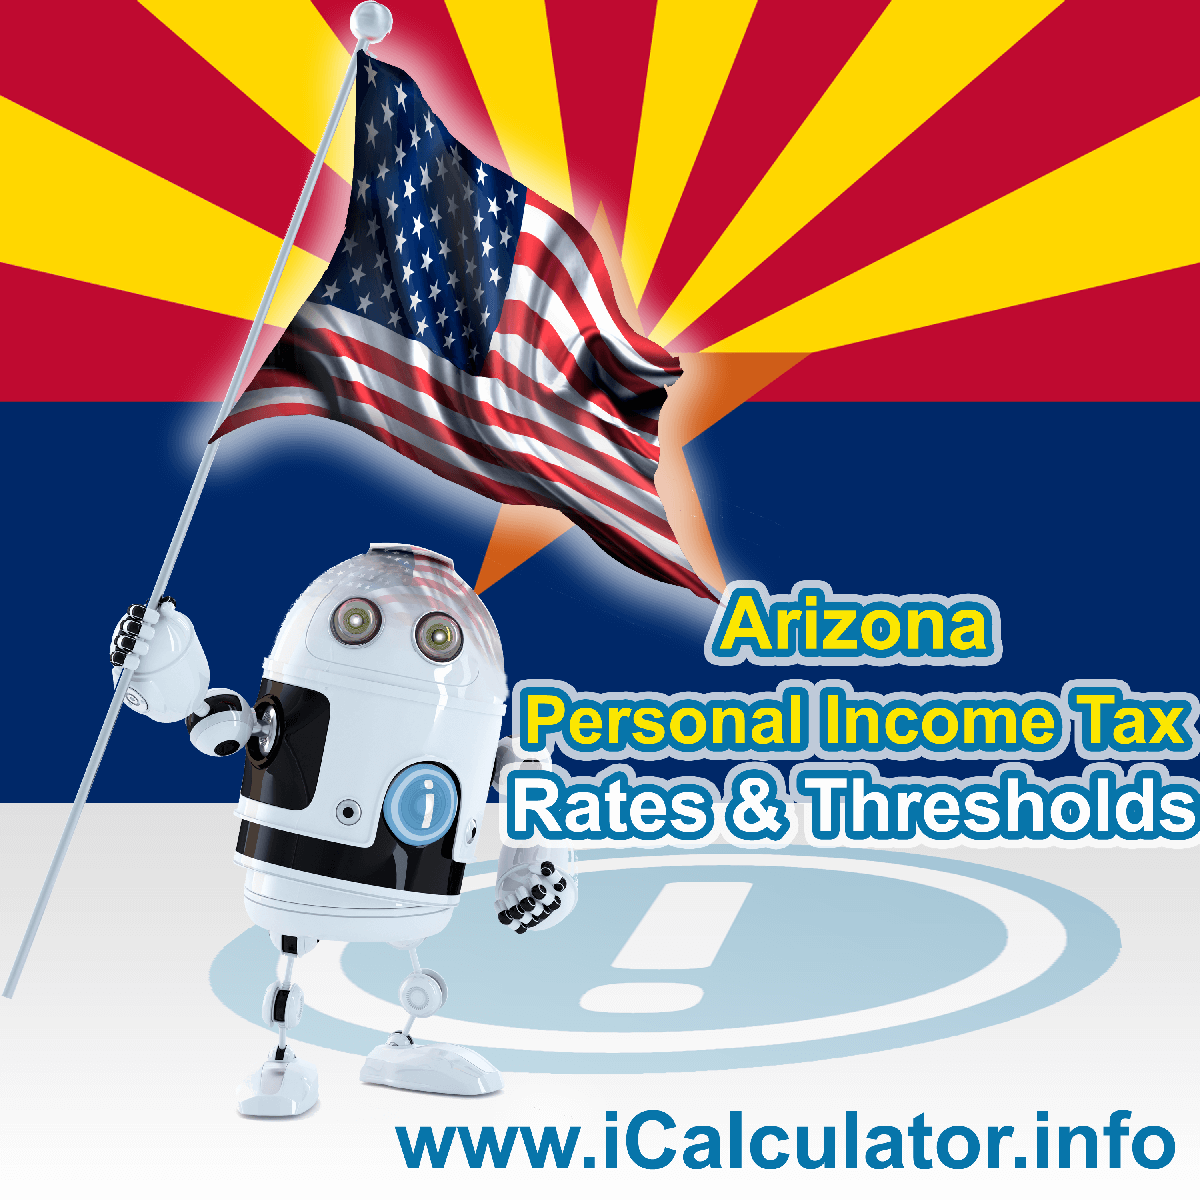 Arizona State Tax Tables 2014. This image displays details of the Arizona State Tax Tables for the 2014 tax return year which is provided in support of the 2014 US Tax Calculator